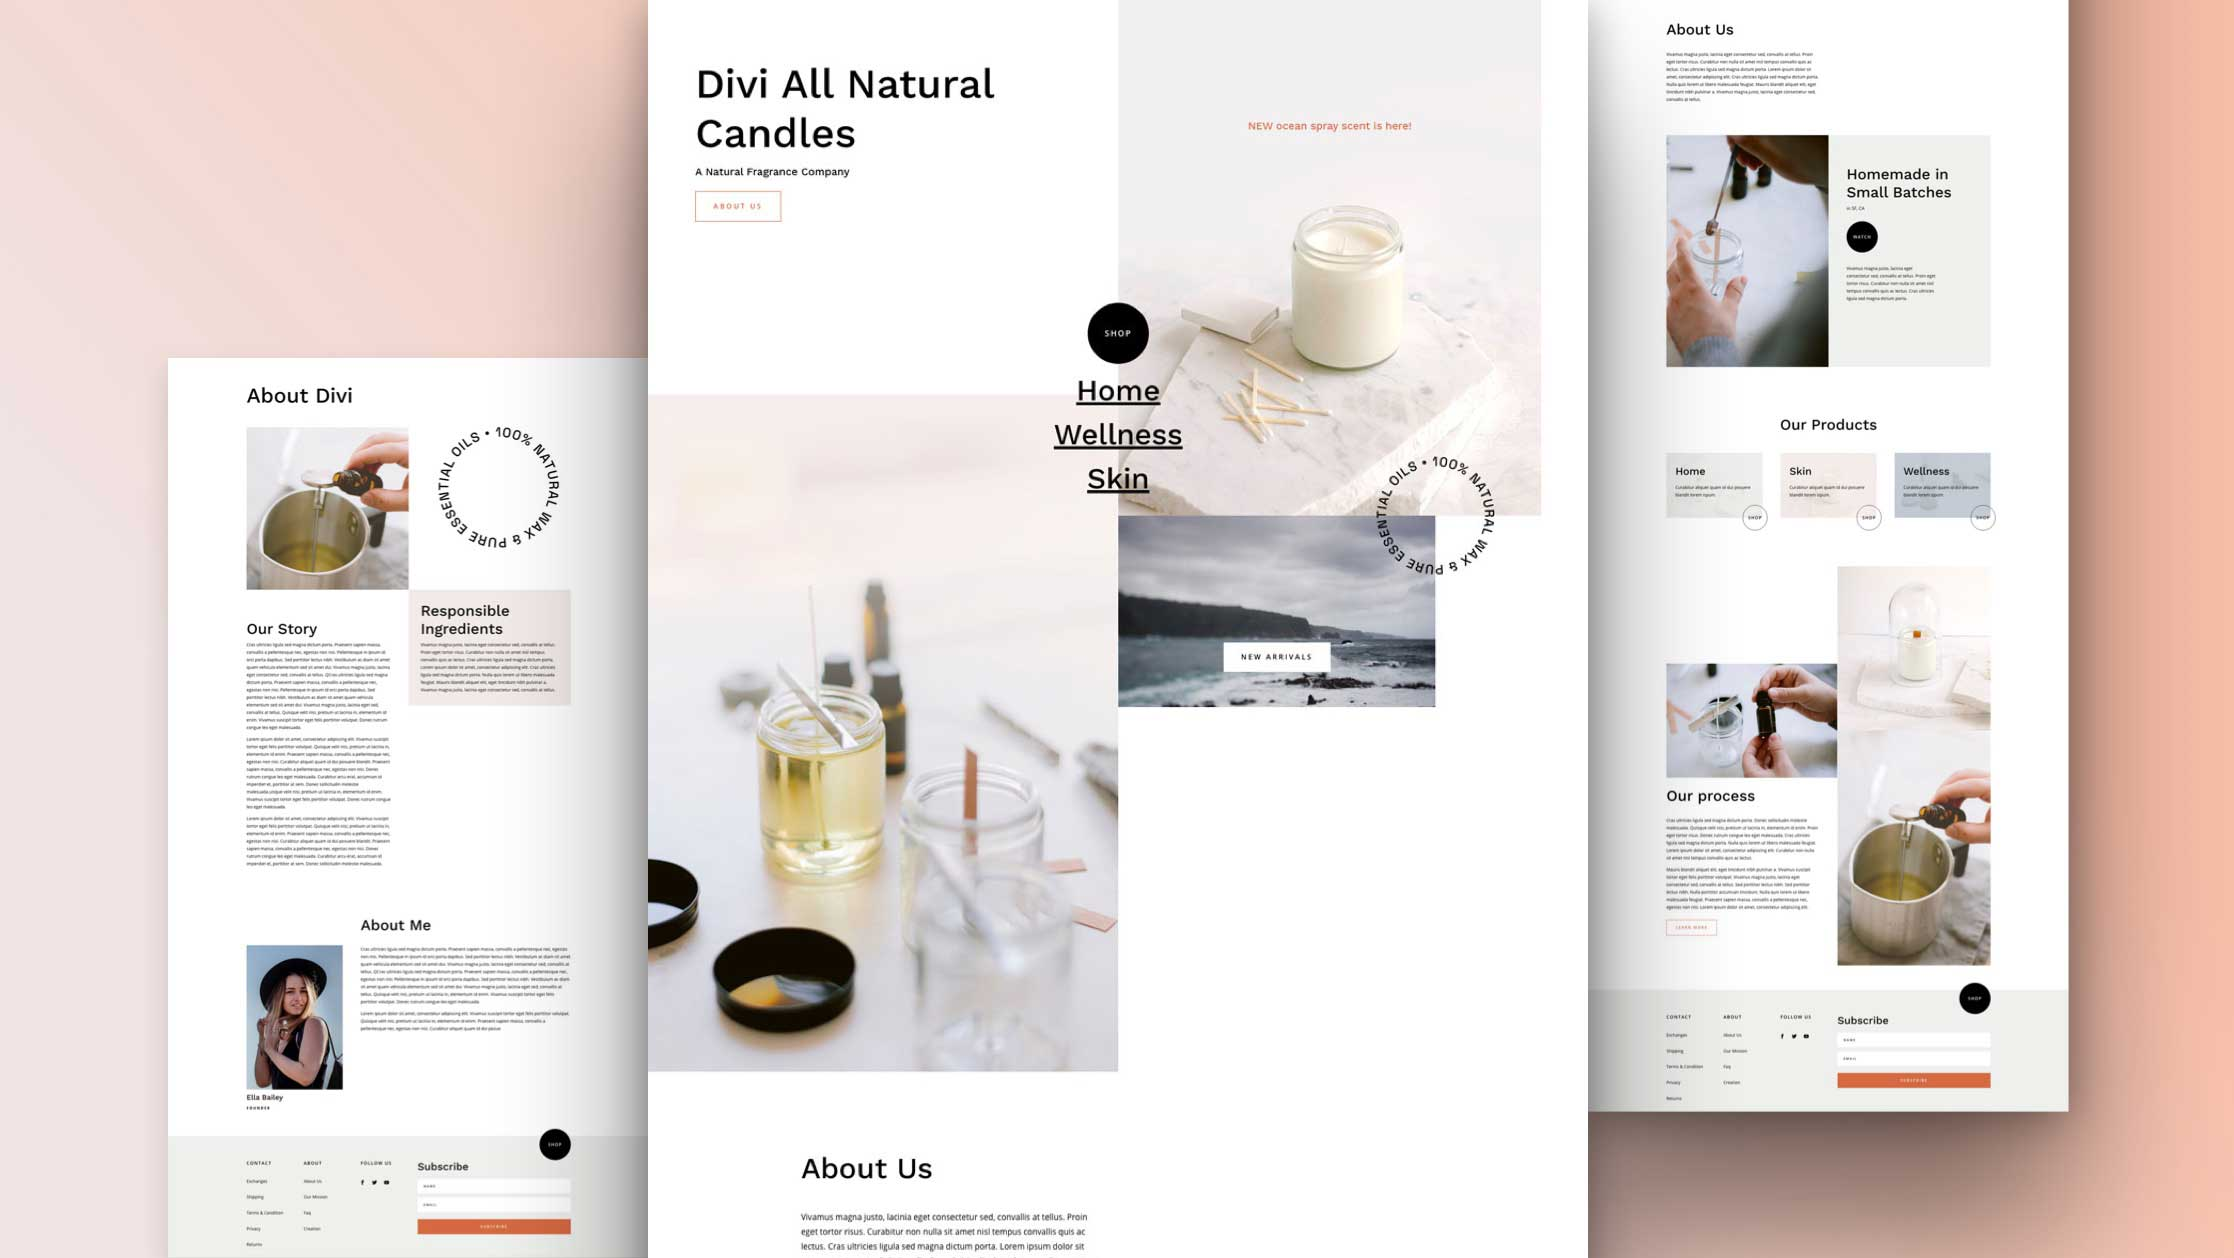 Get a FREE Candle Making Layout Pack for Divi